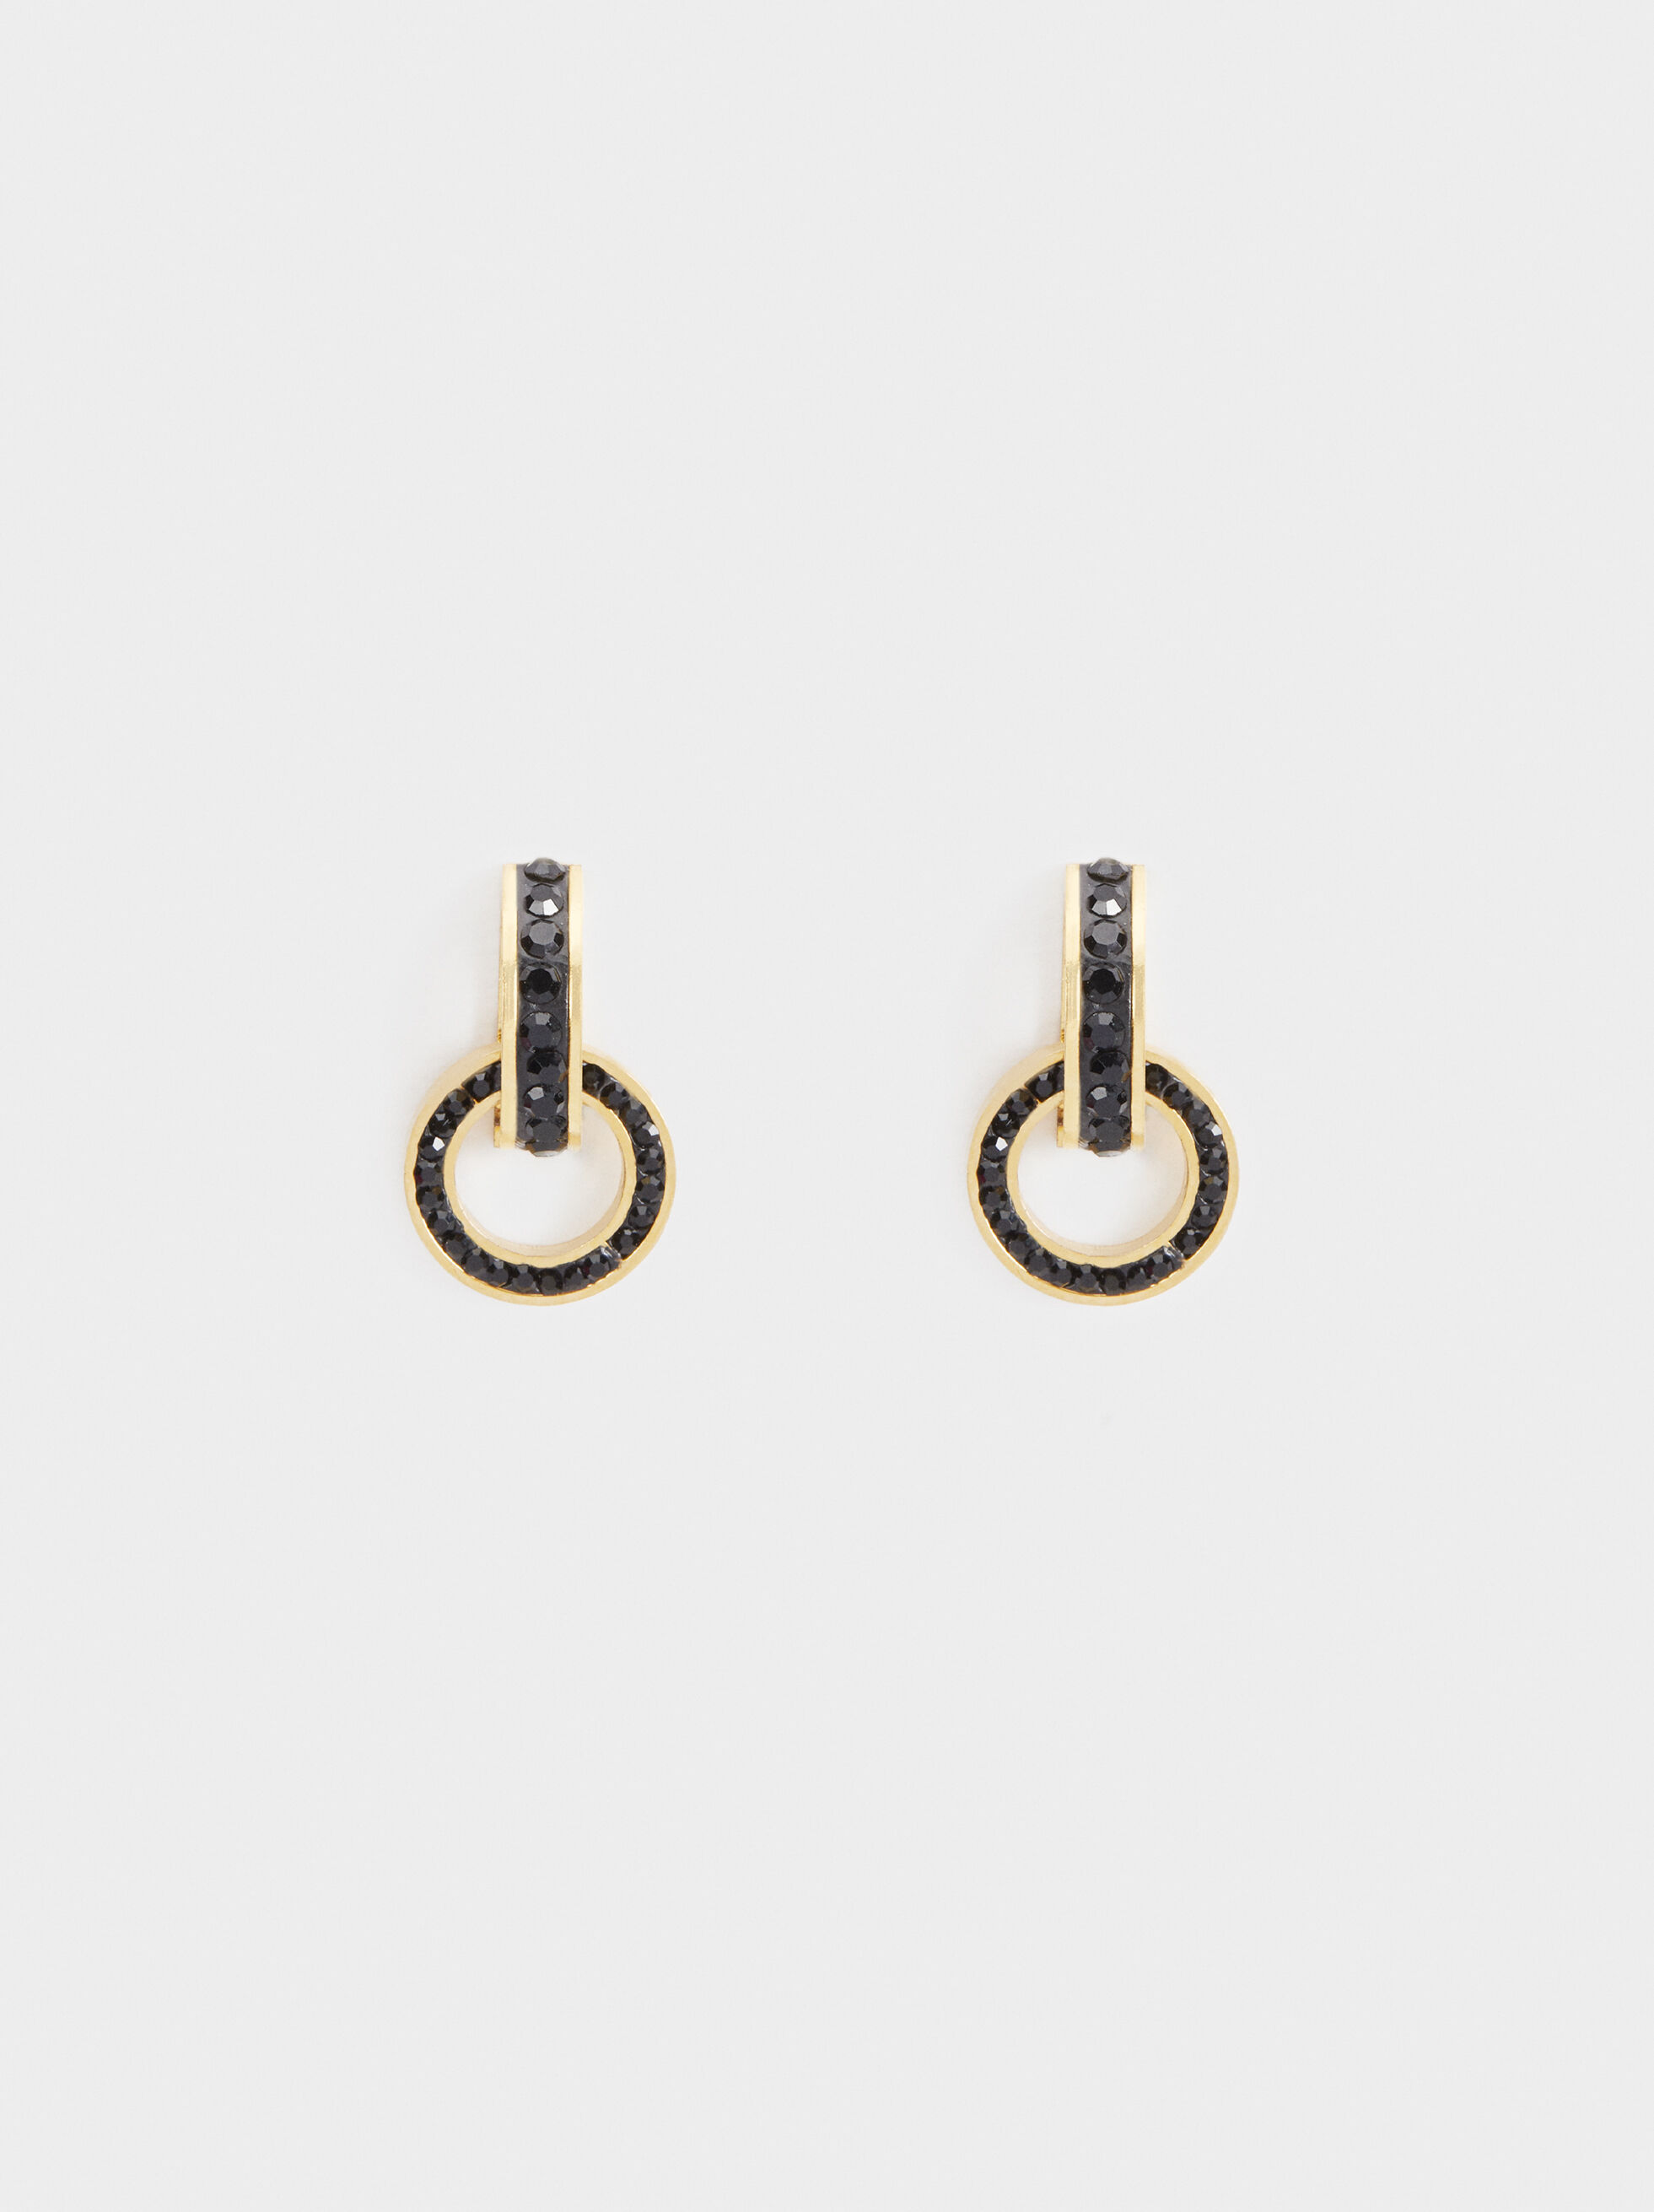 Steel Short Earrings With Rhinestones, Golden, hi-res